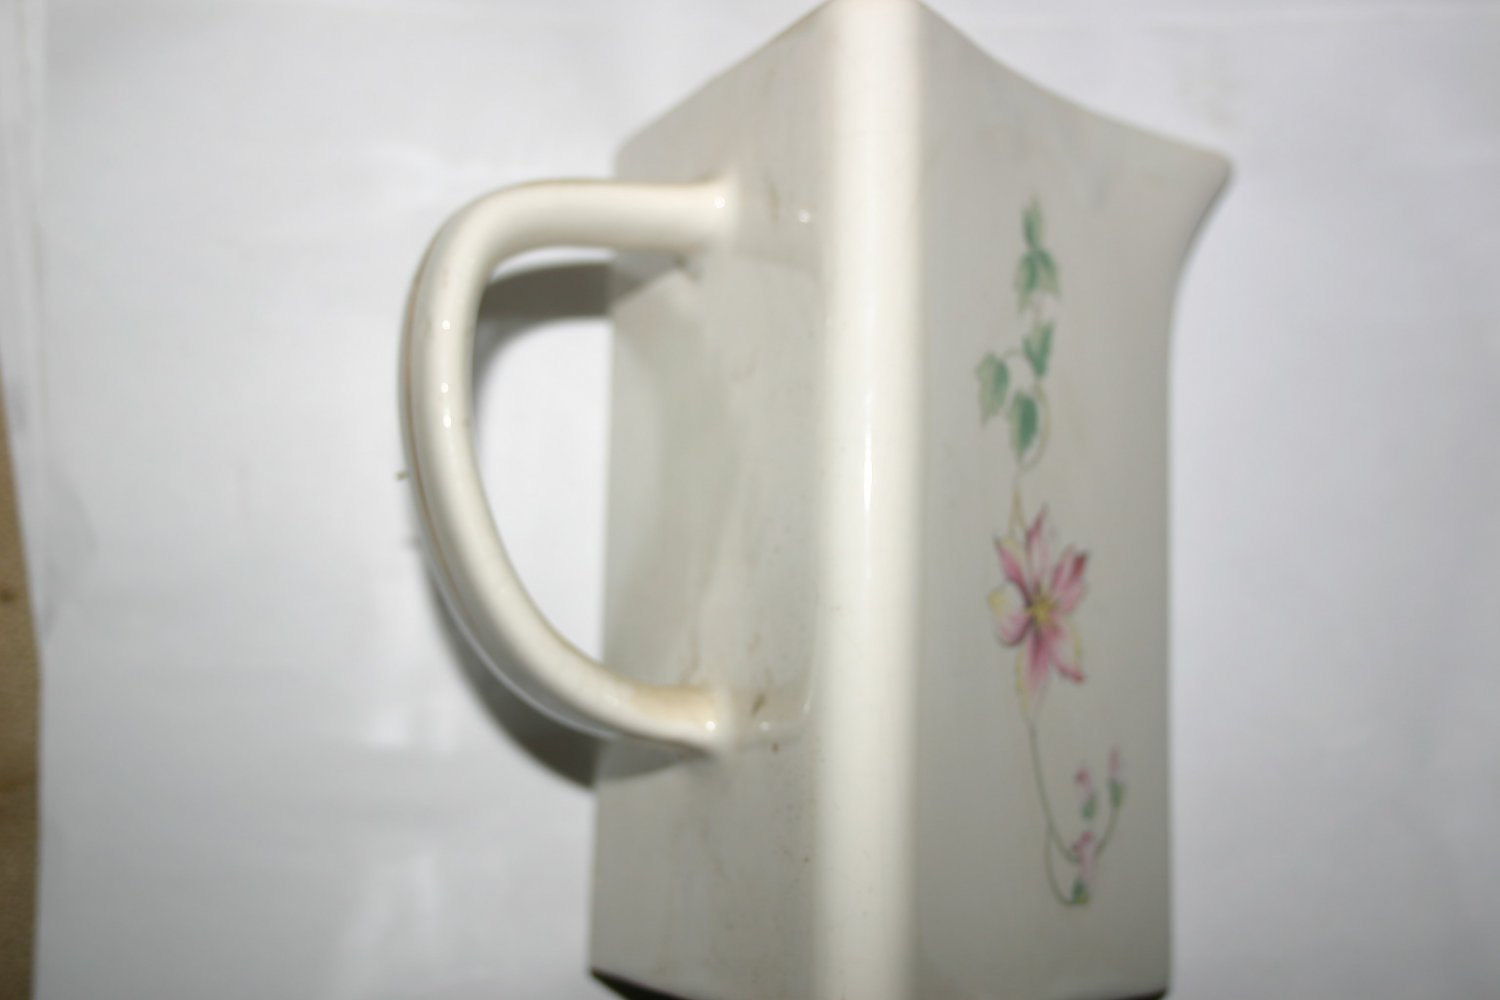 Floral Water Jug For Whiskey and Other Spirits